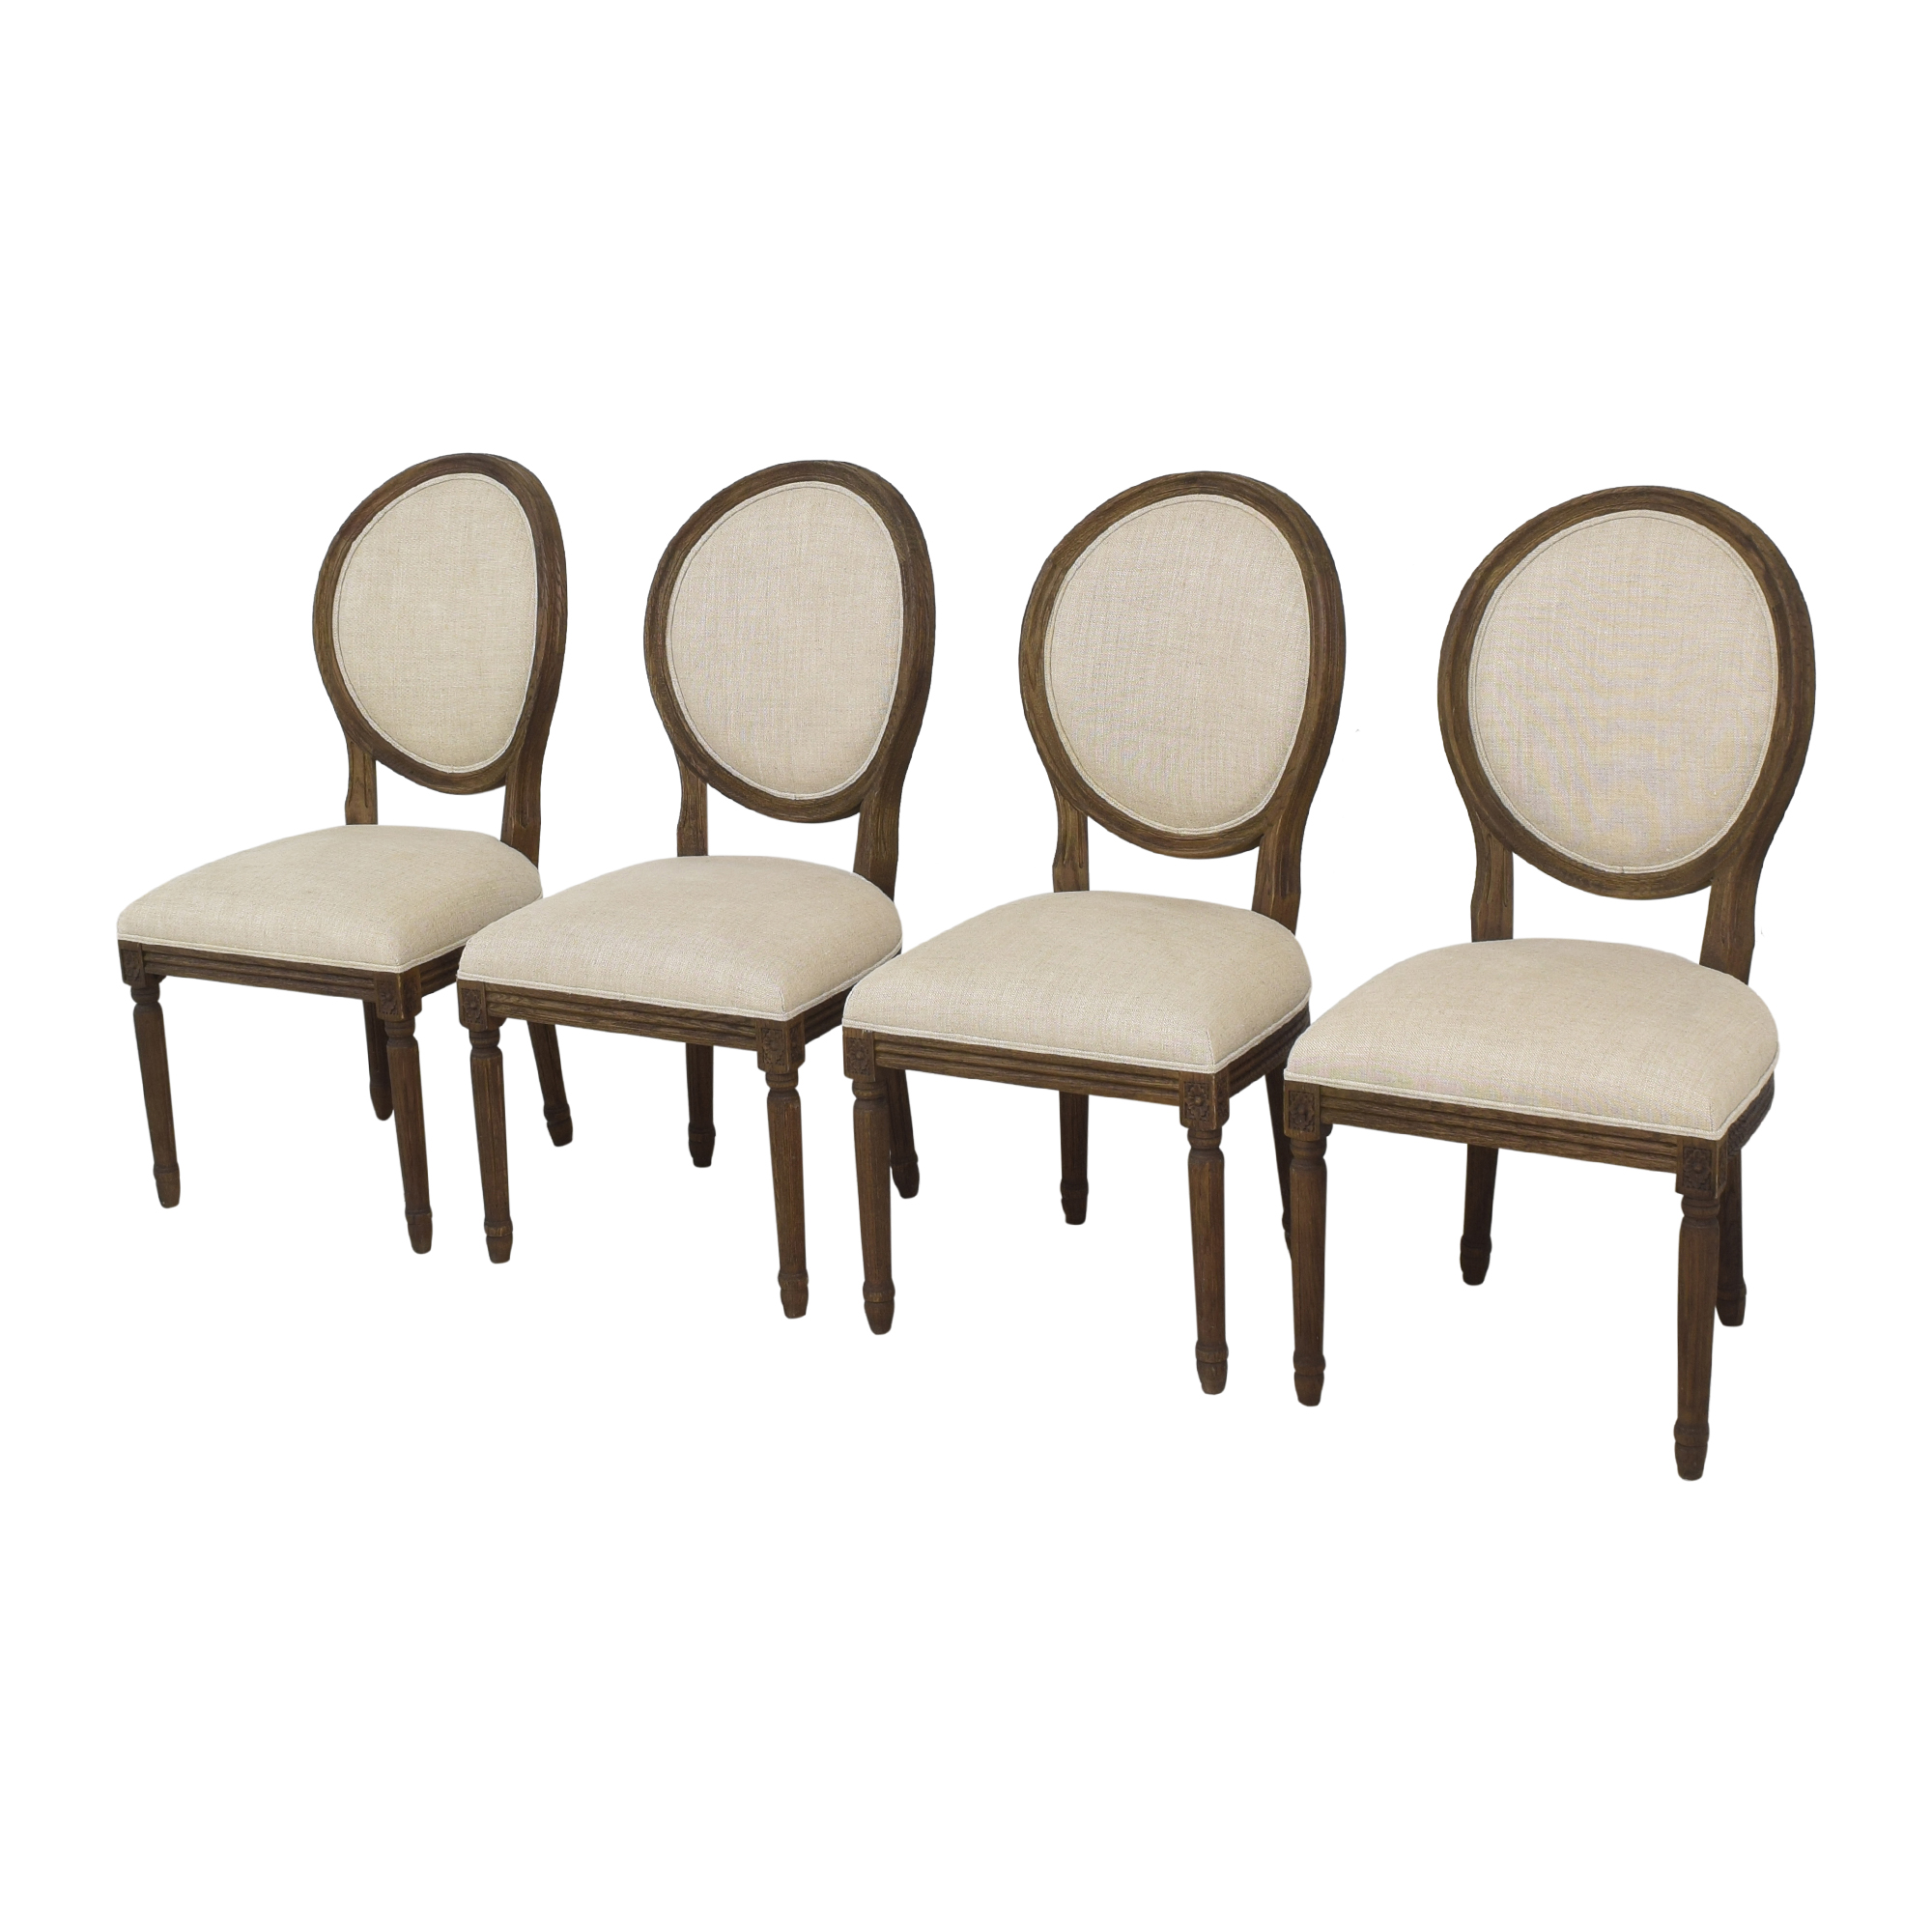 Restoration Hardware Restoration Hardware Vintage French Round Dining Side Chairs second hand